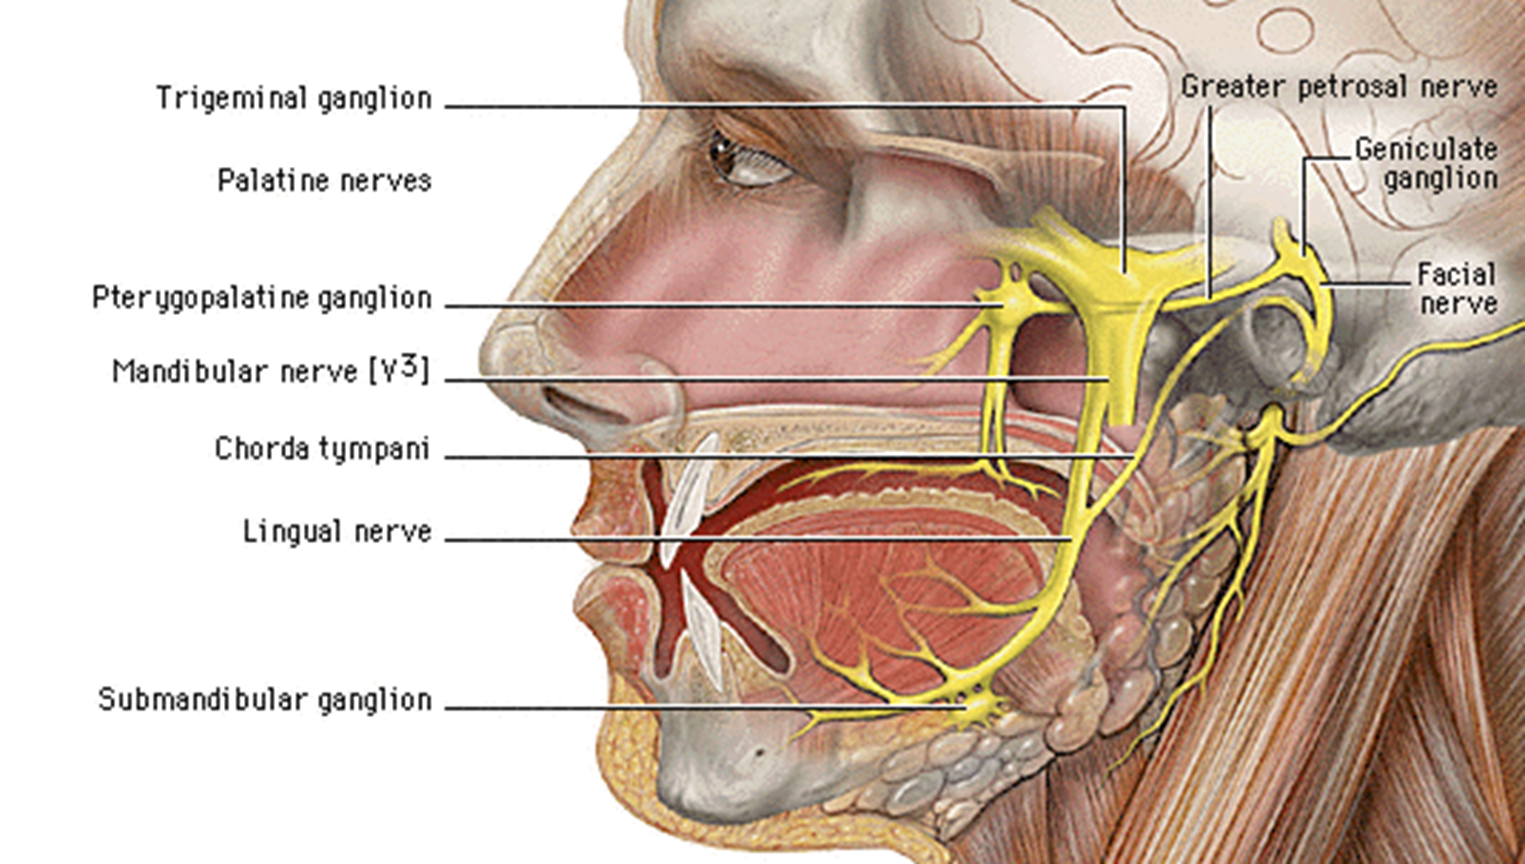 Floor Of Mouth Anatomy 48095 | MOVIEWEB